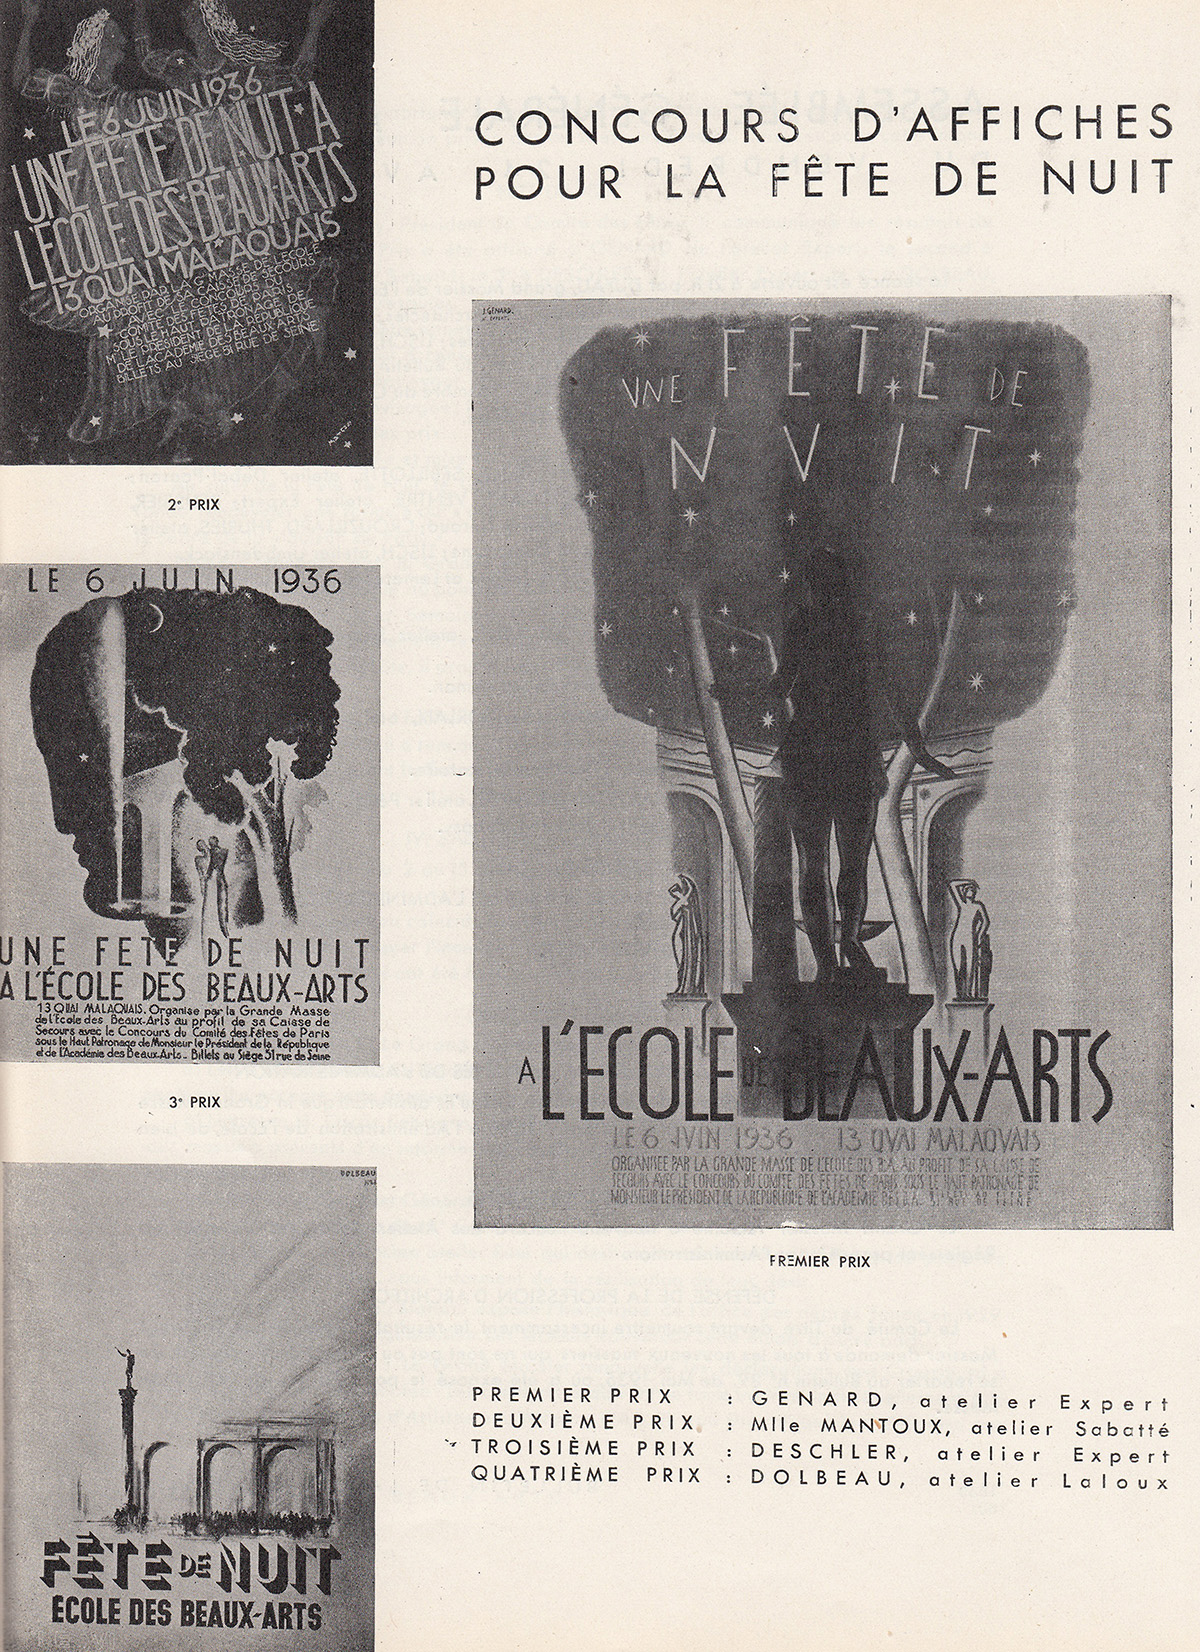 193605_Bulletin-GMBA_Resultat-concours-affiches.jpg